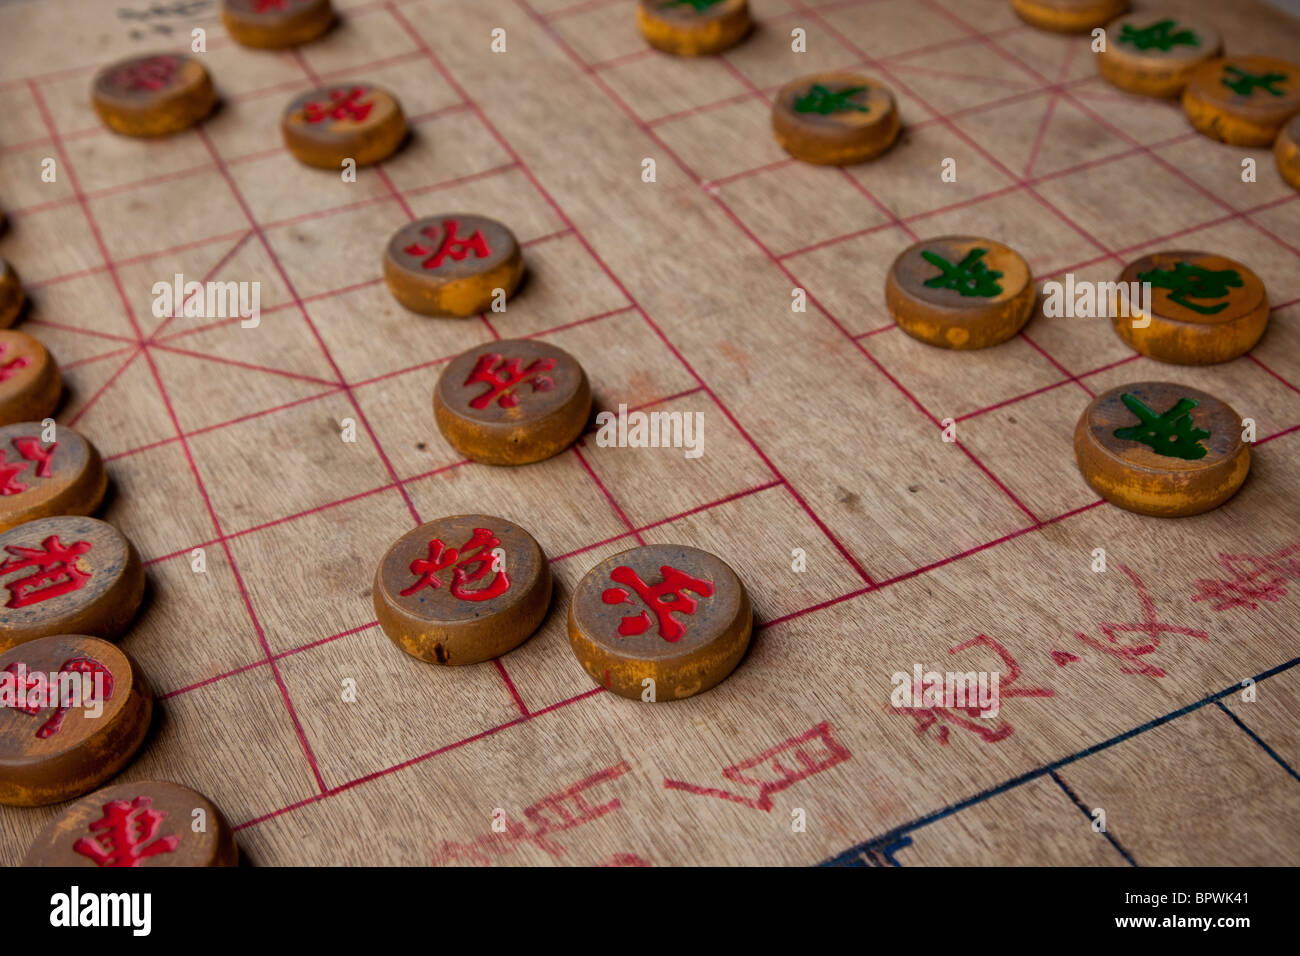 Chinese Chess boardgame - Stock Image